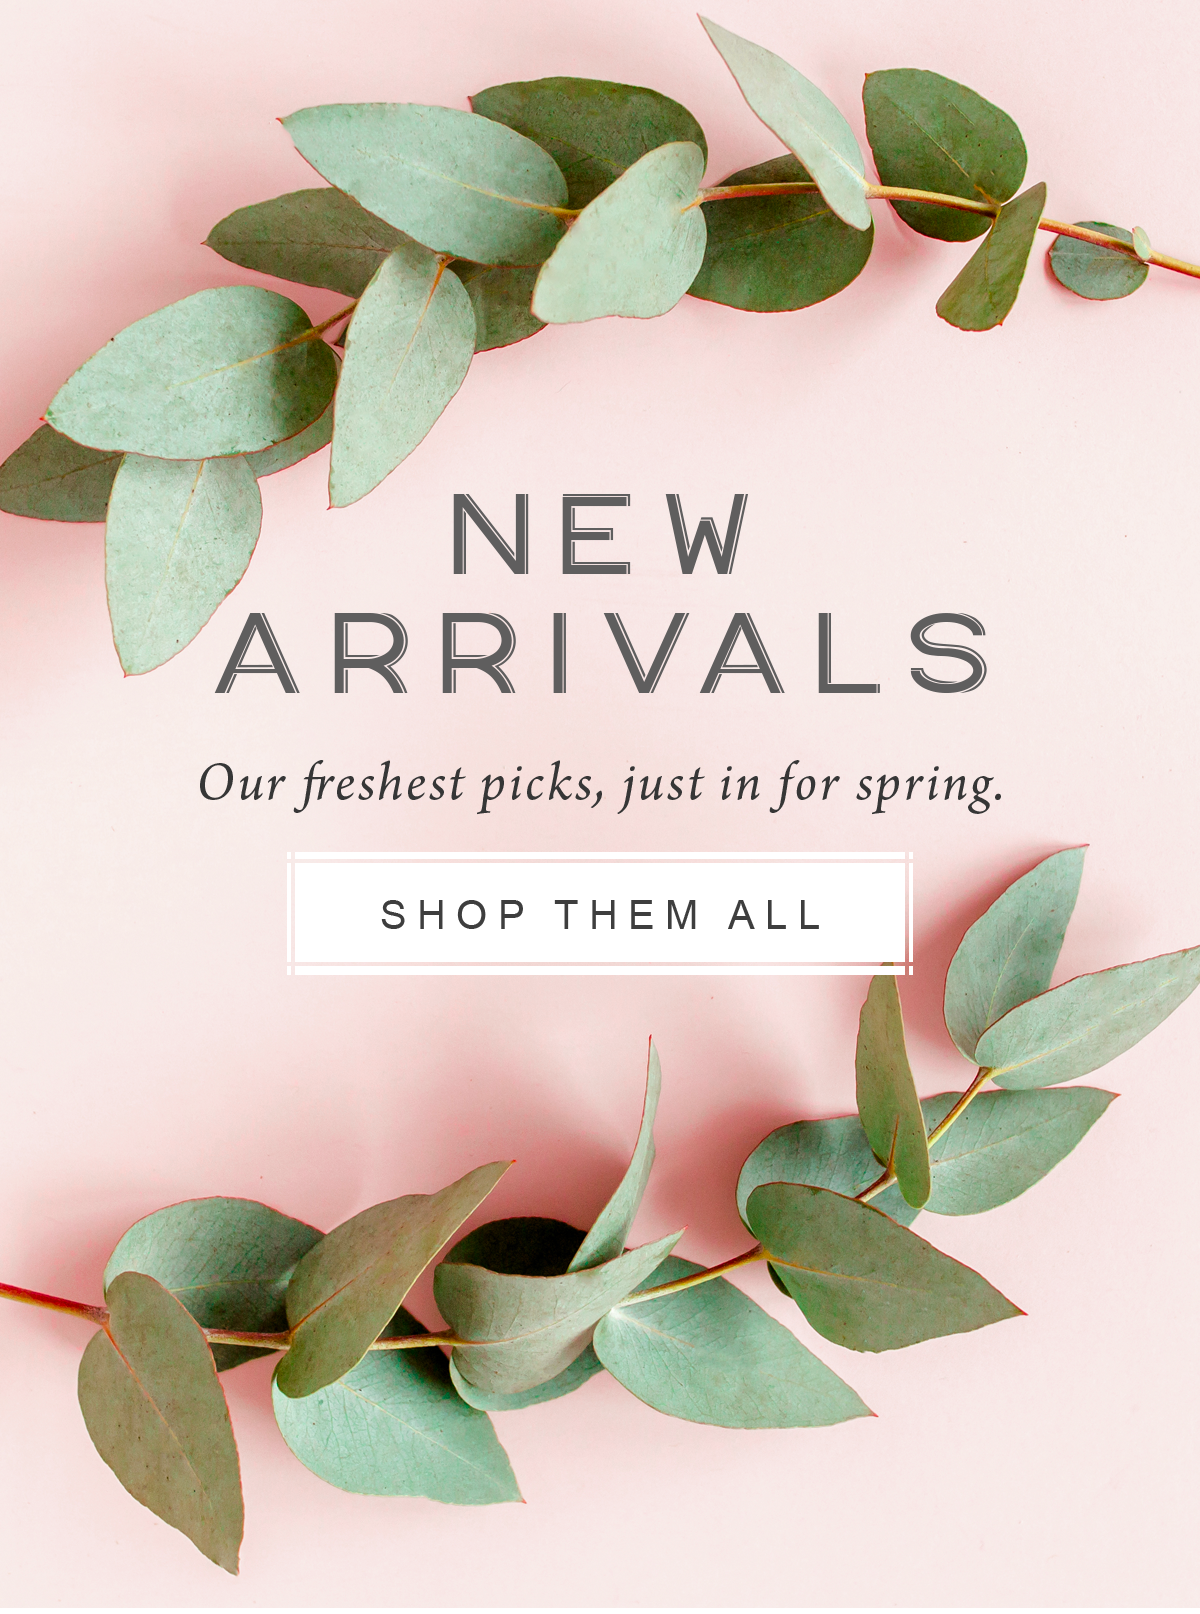 New Arrivals Our freshest picks, just in for spring.  Shop Them All